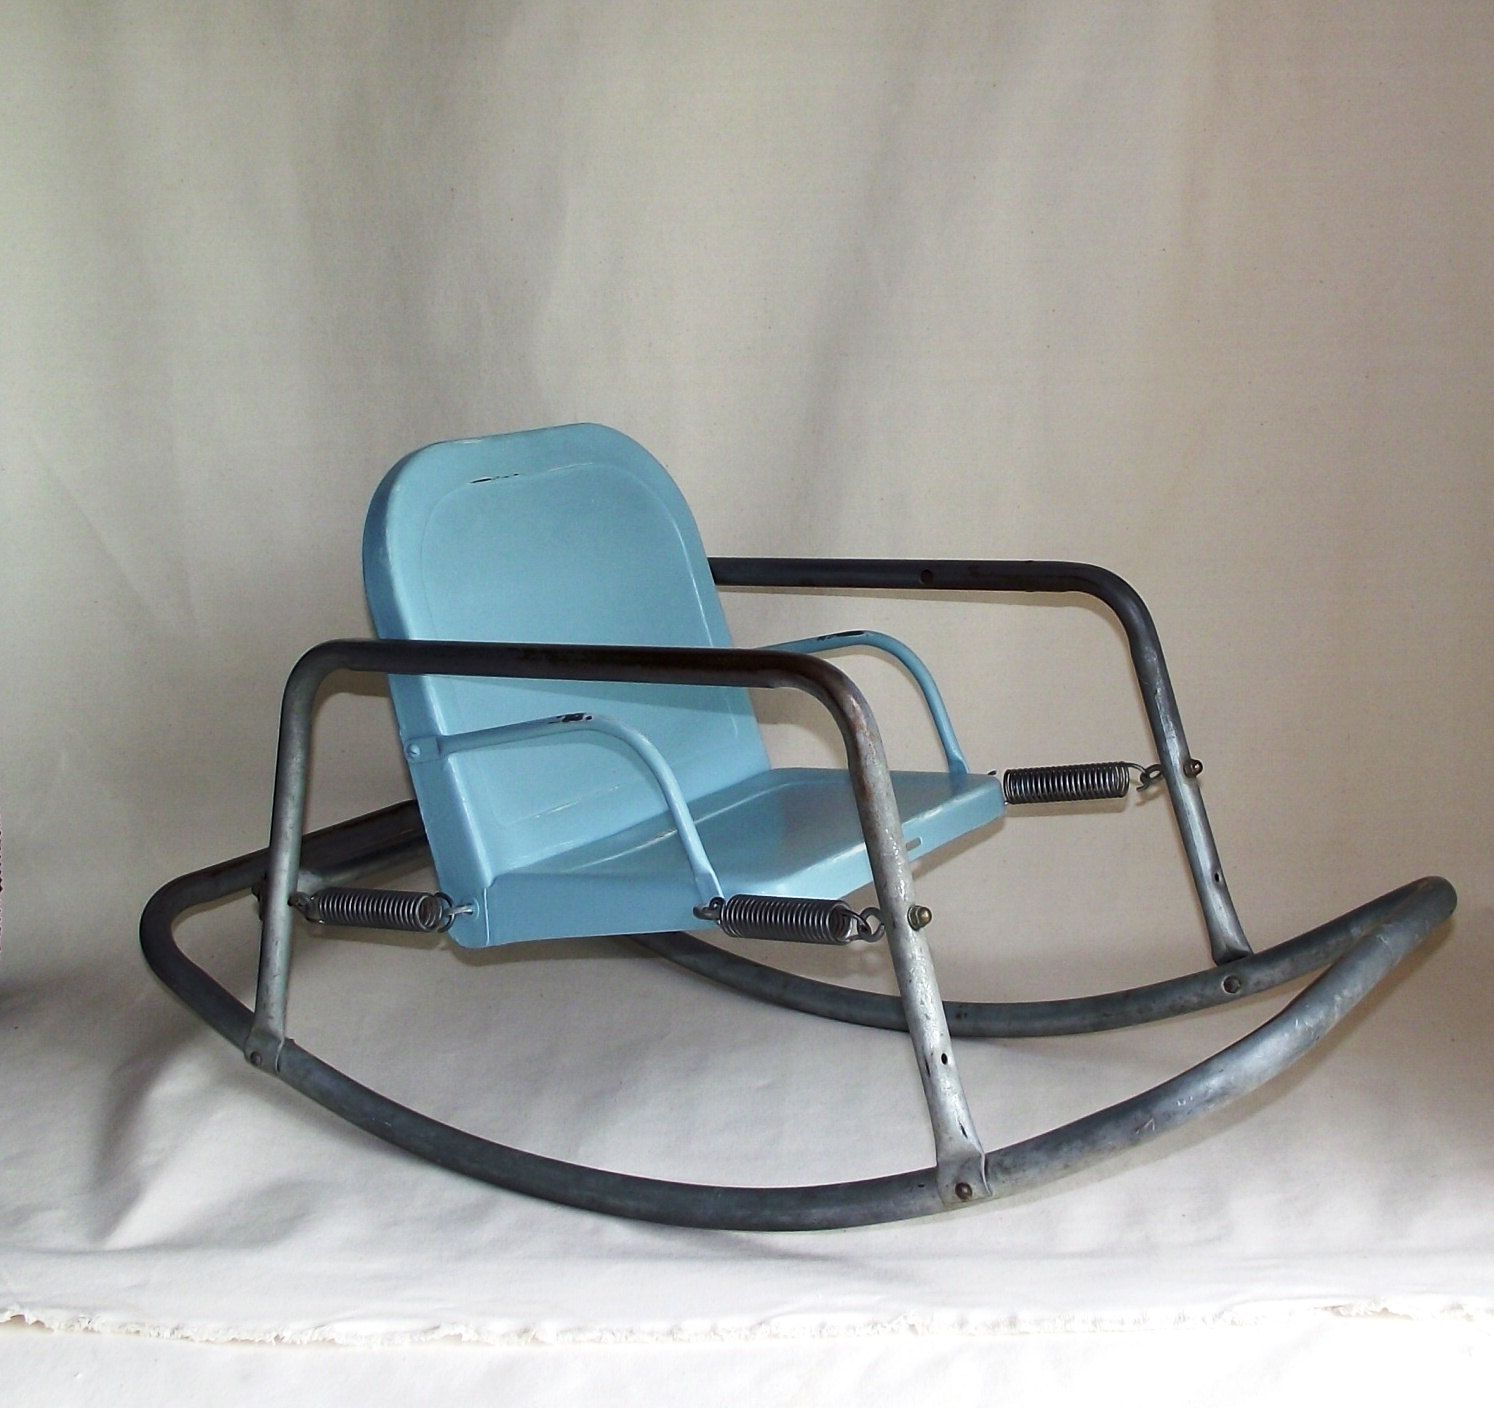 Modern Baby Rocking Chair Vintage Bouncy Baby Metal Rocking Chair Via Etsy Complete